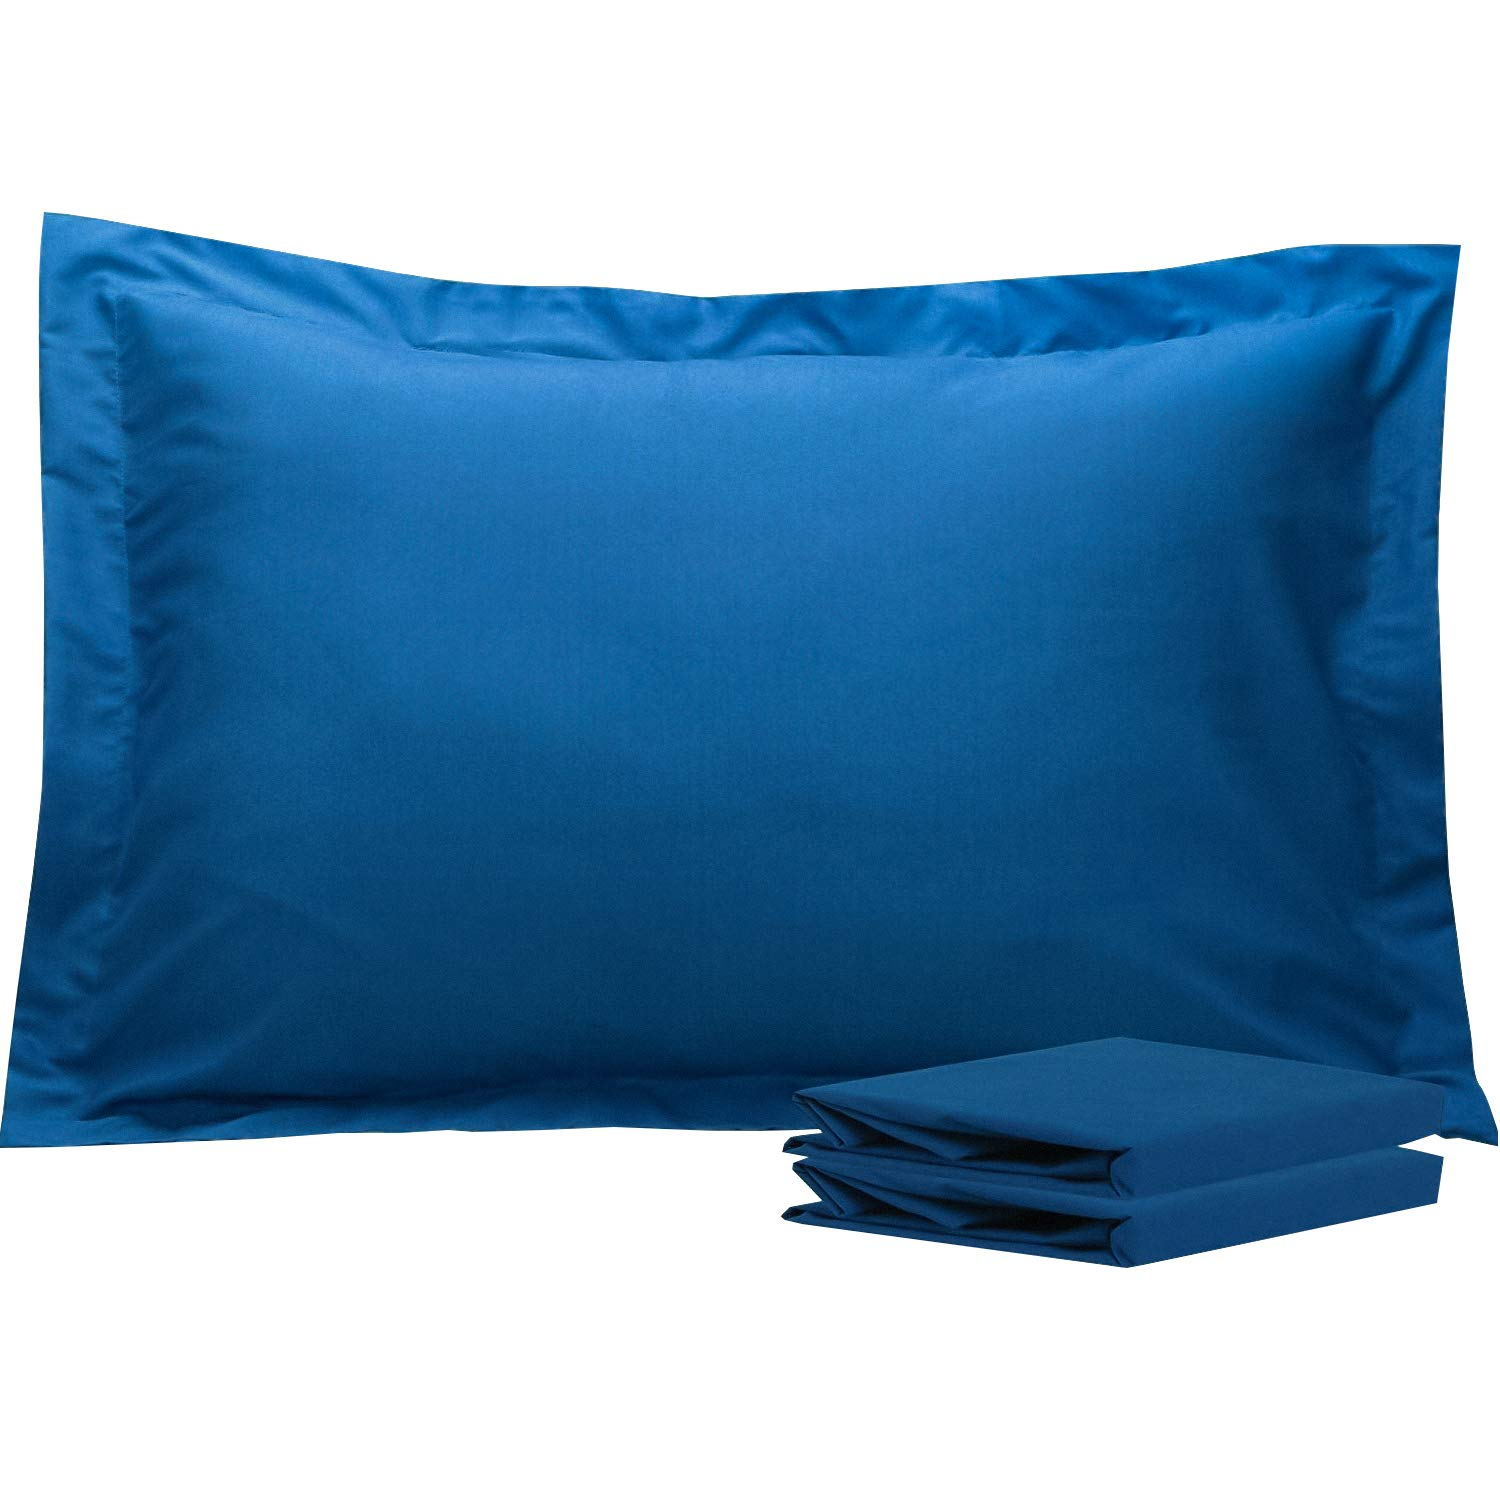 NTBAY Queen Pillow Shams, Set of 2, 100% Brushed Microfiber, Soft and Cozy, Wrinkle, Fade, Stain Resistant (Royal Blue, Queen)